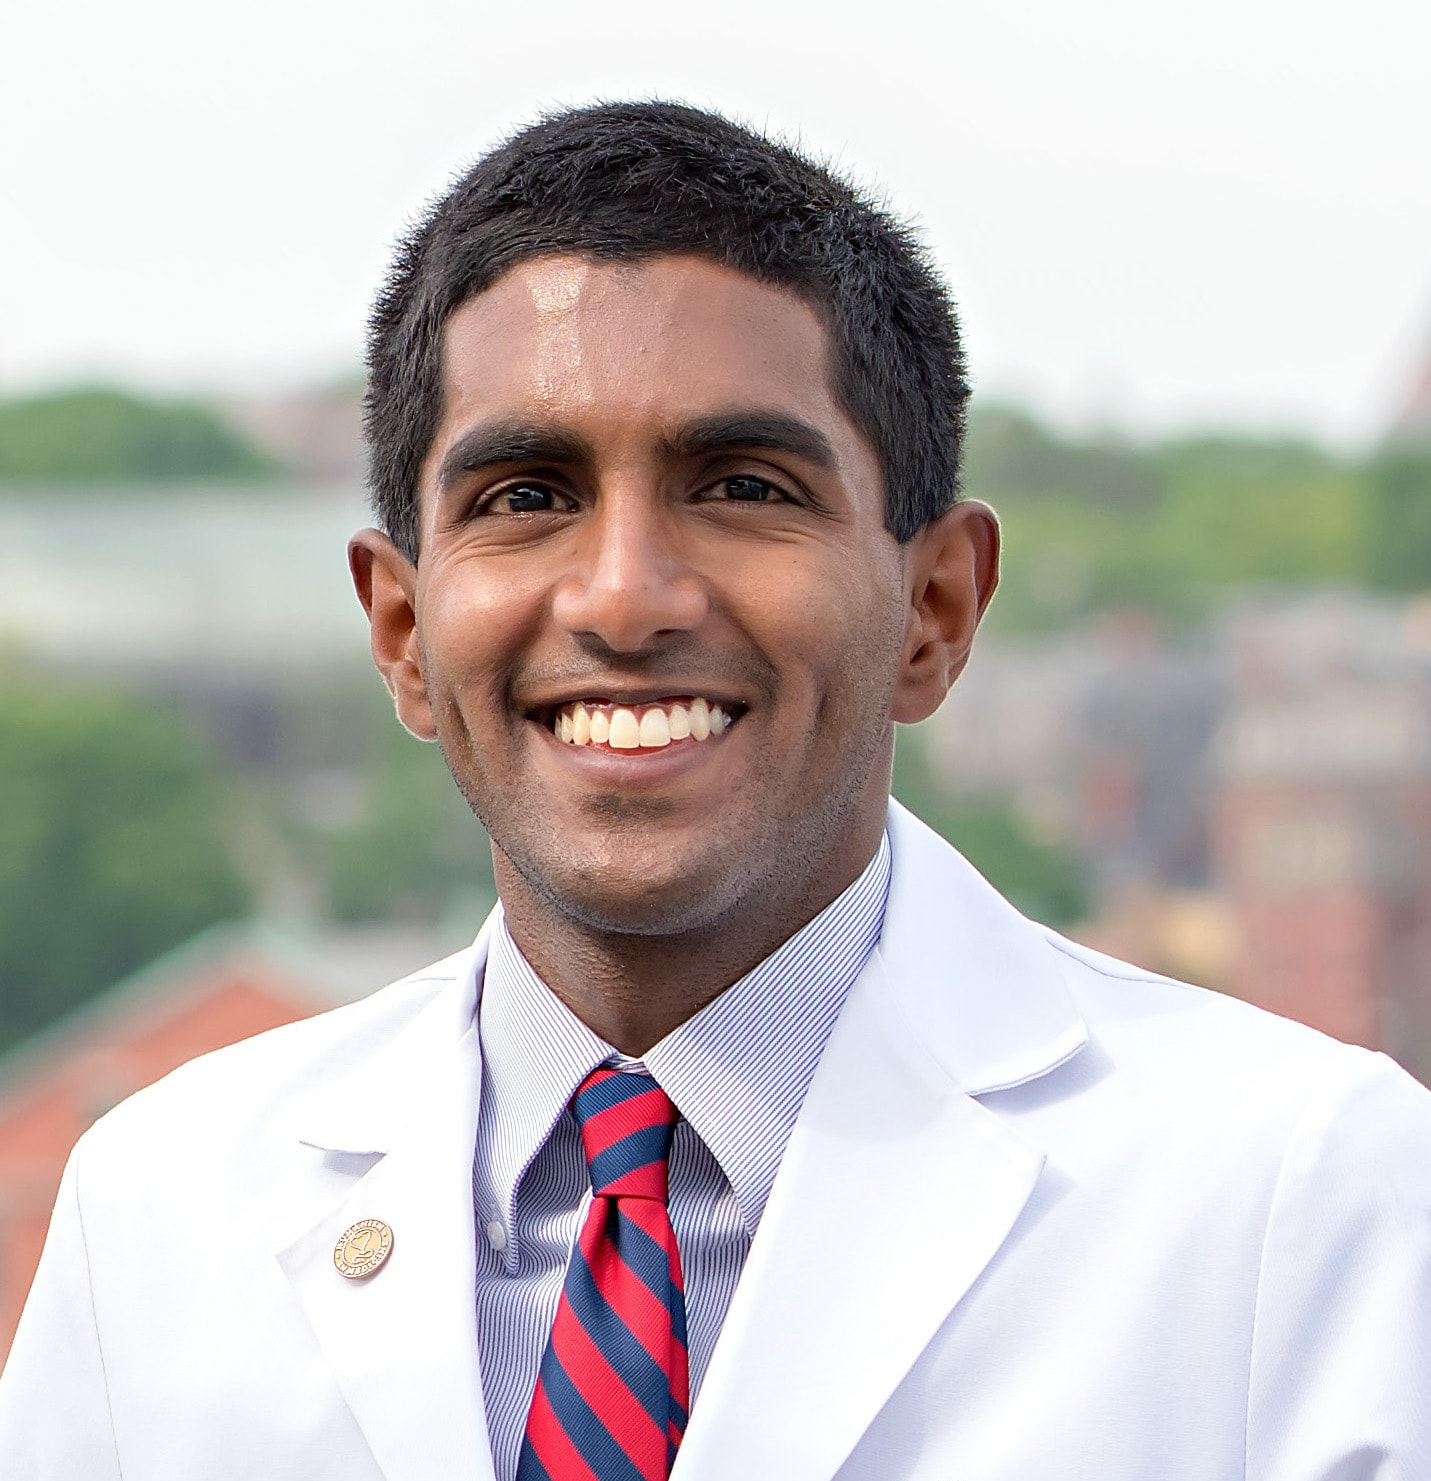 Shawn S Verma, MD Other Specialty